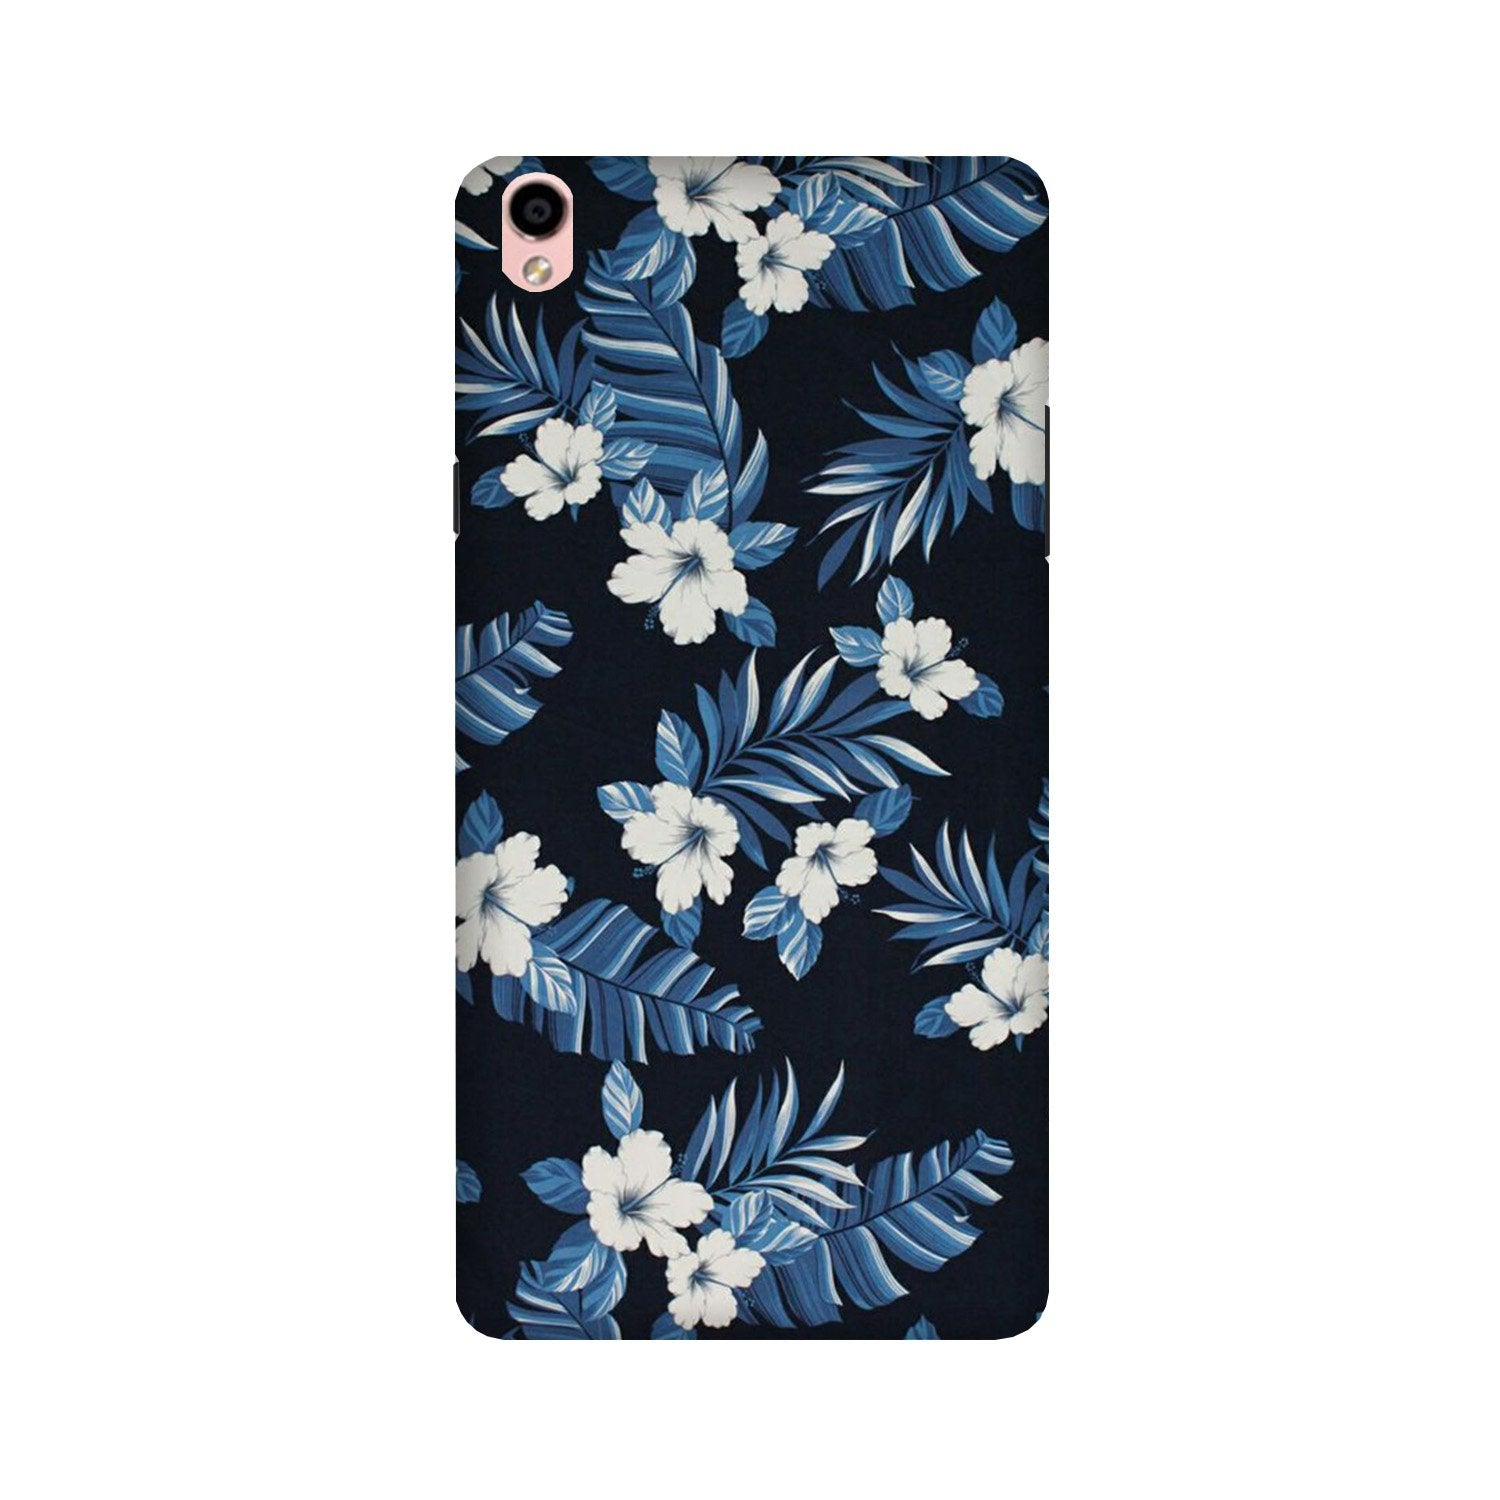 White flowers Blue Background2 Case for Oppo F1 Plus